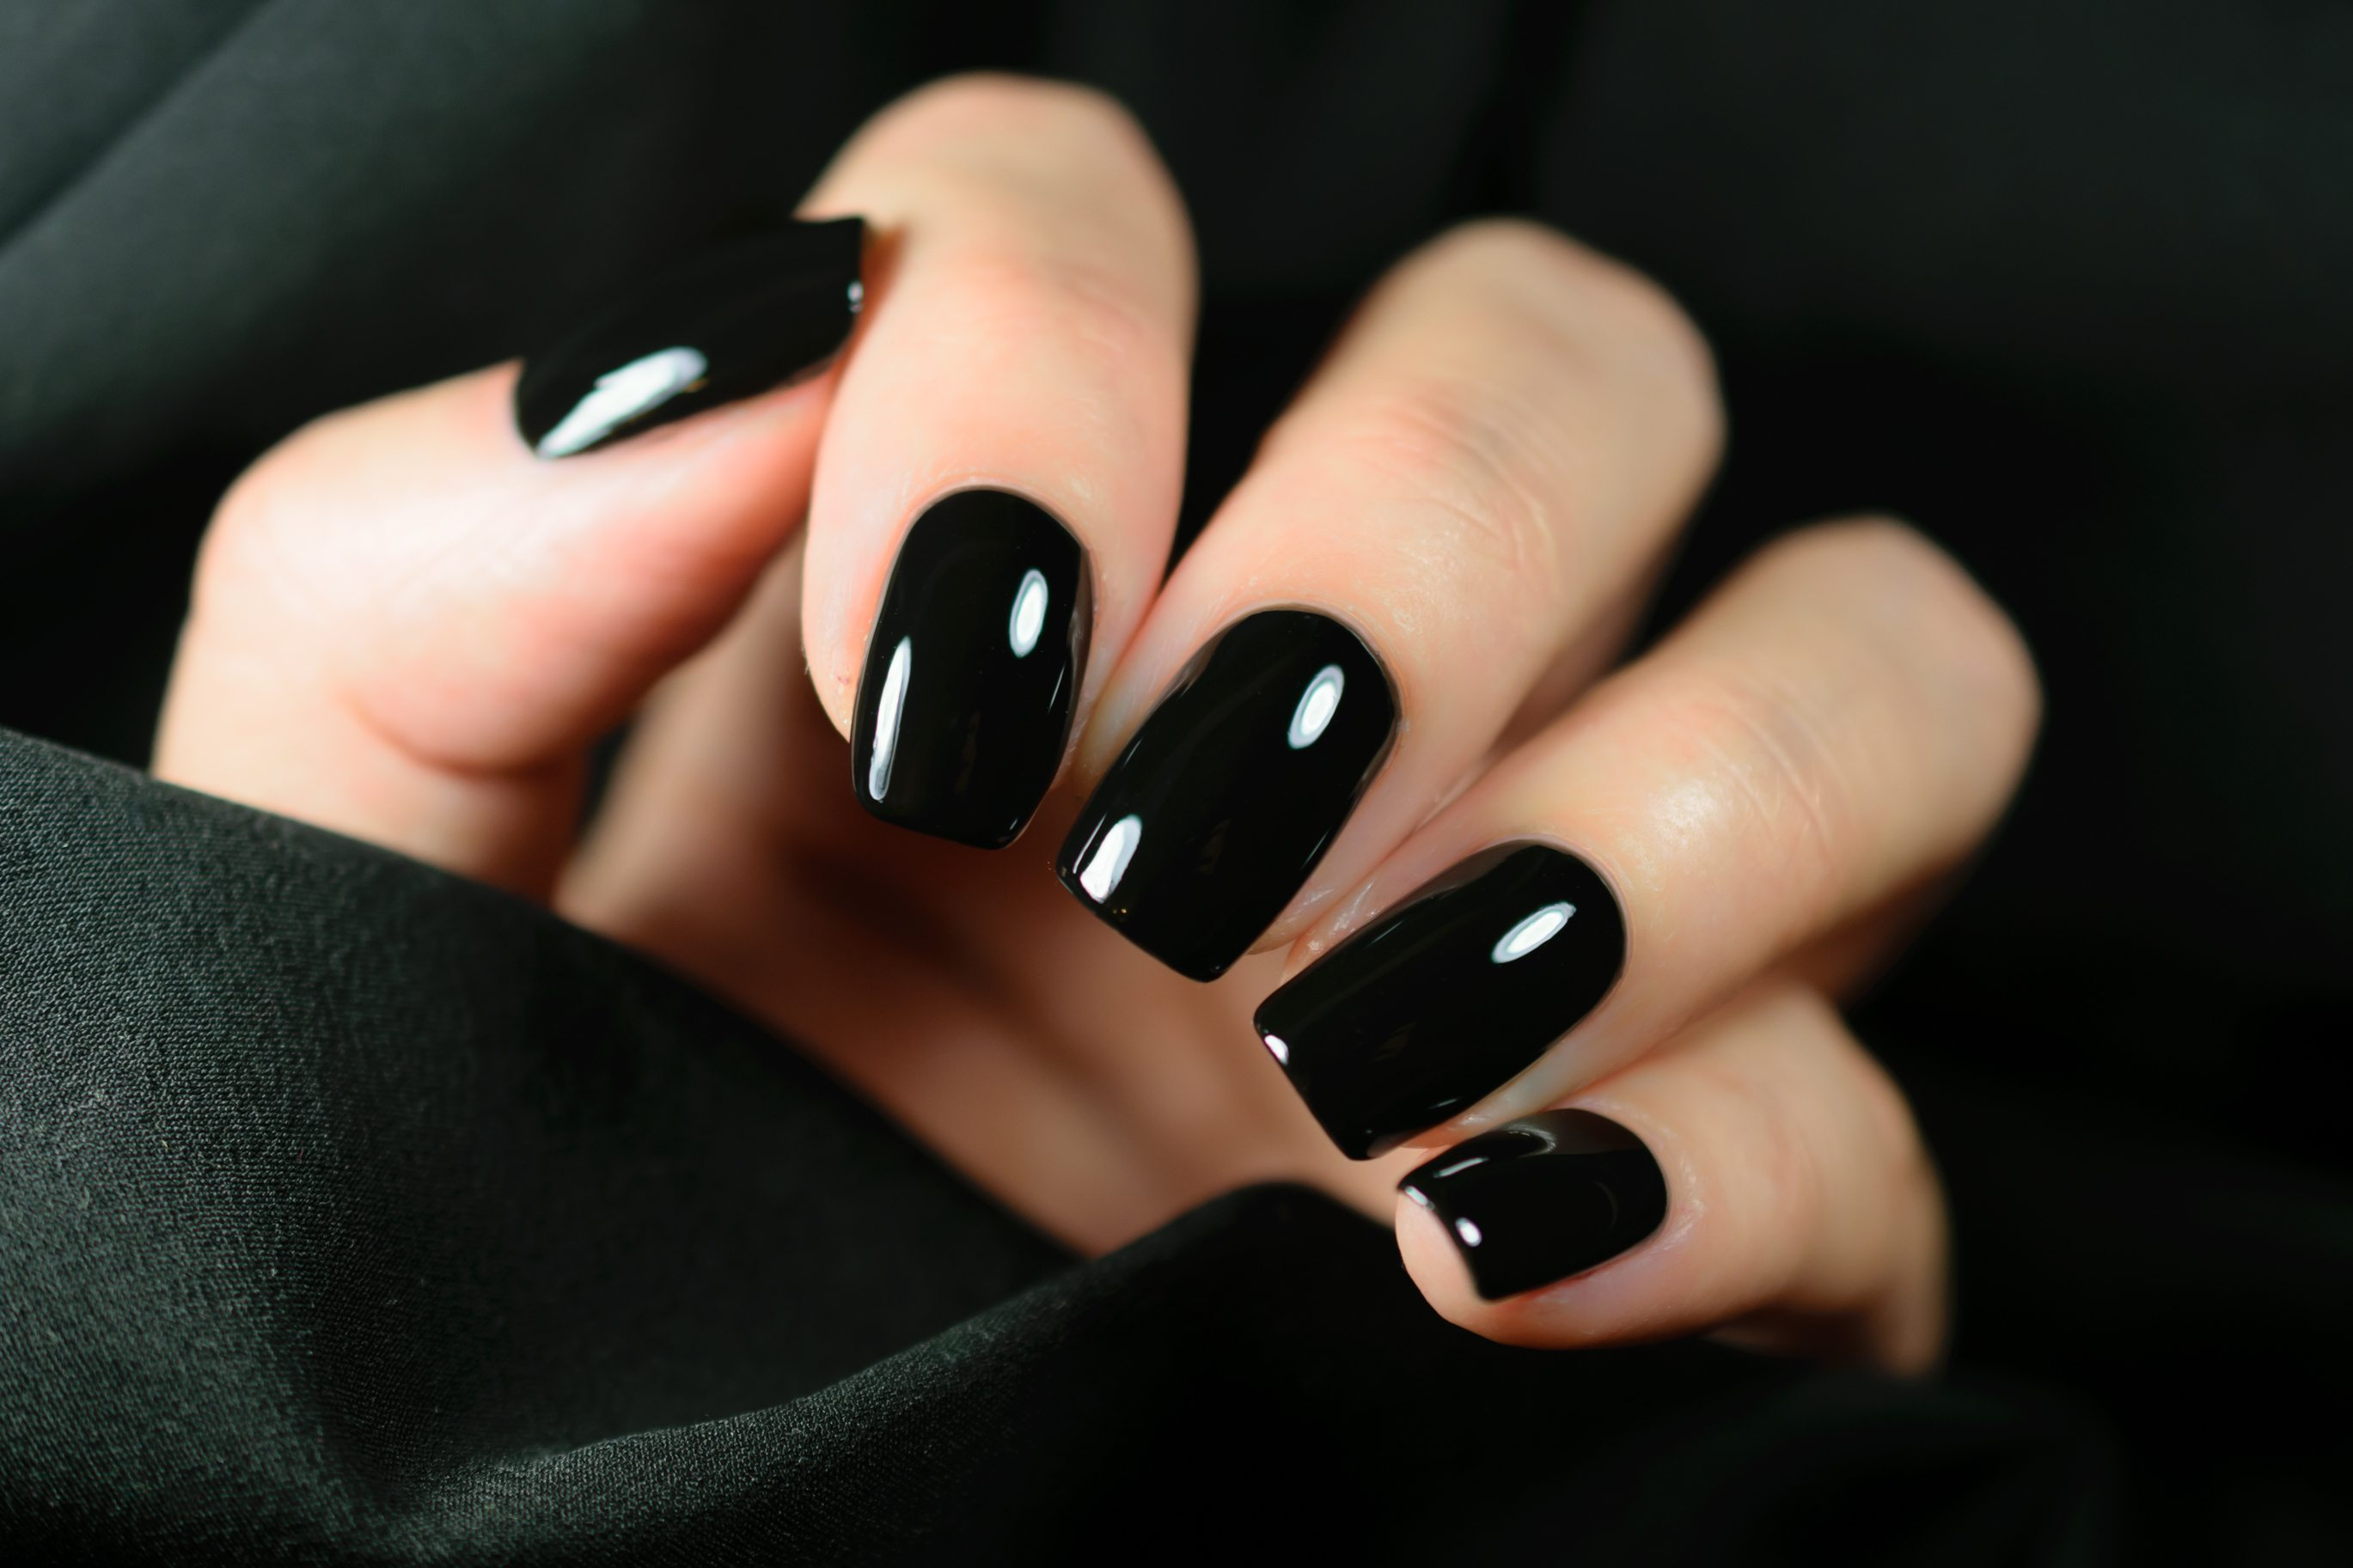 vampish nails